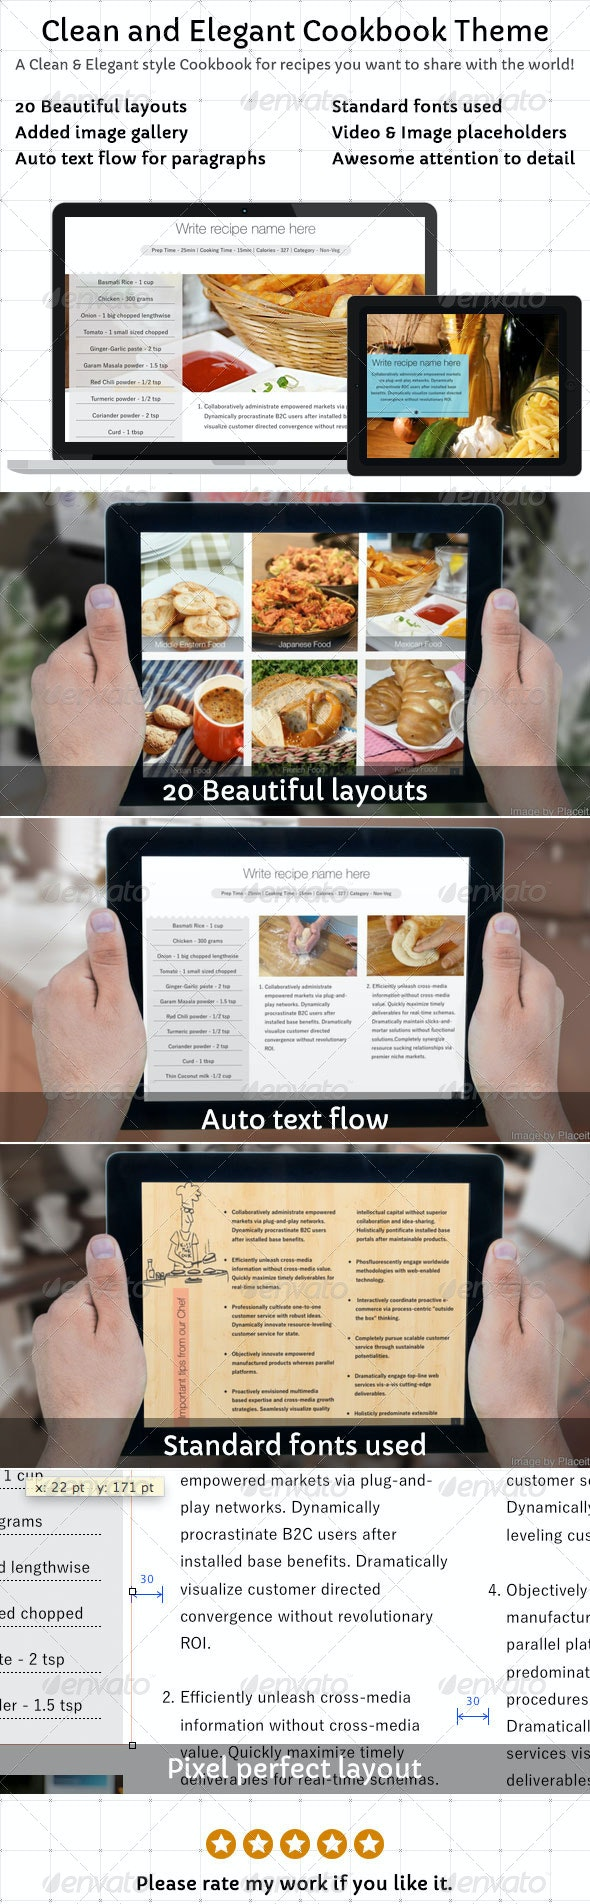 Clean and Elegant Cookbook Theme for iBooks Author - Digital Books ePublishing